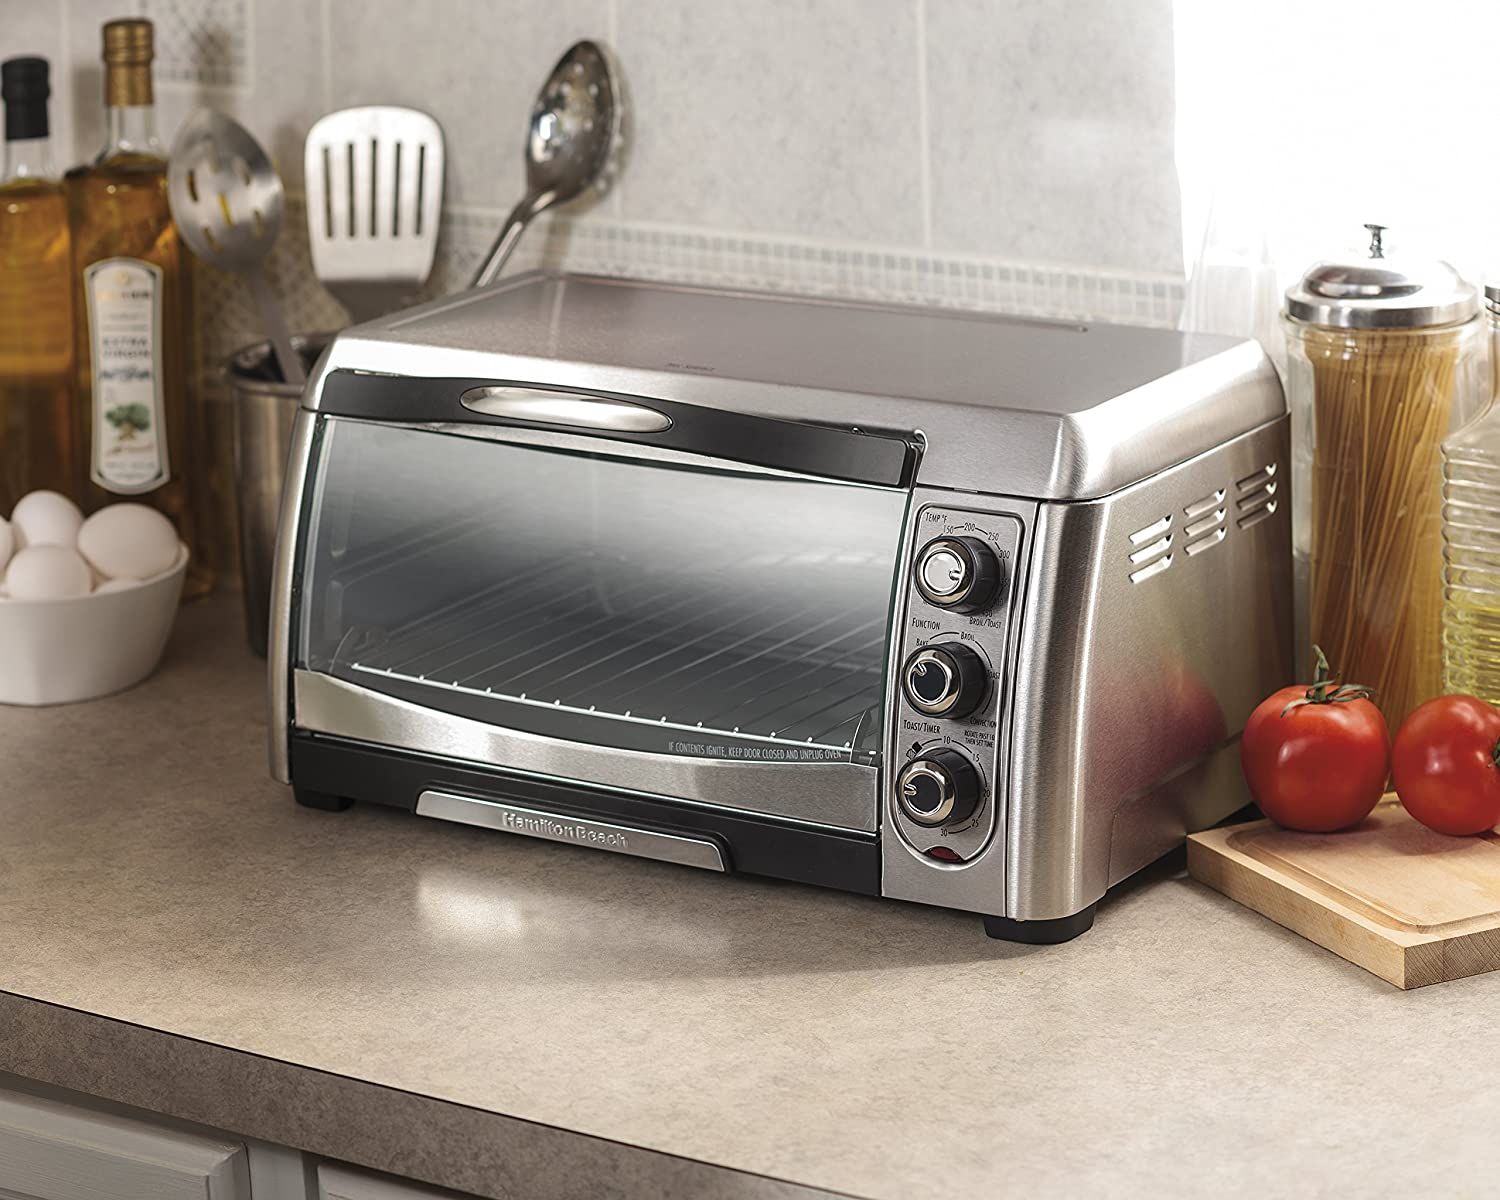 Top 10 Best Toaster Ovens Best Toaster Ovens Review